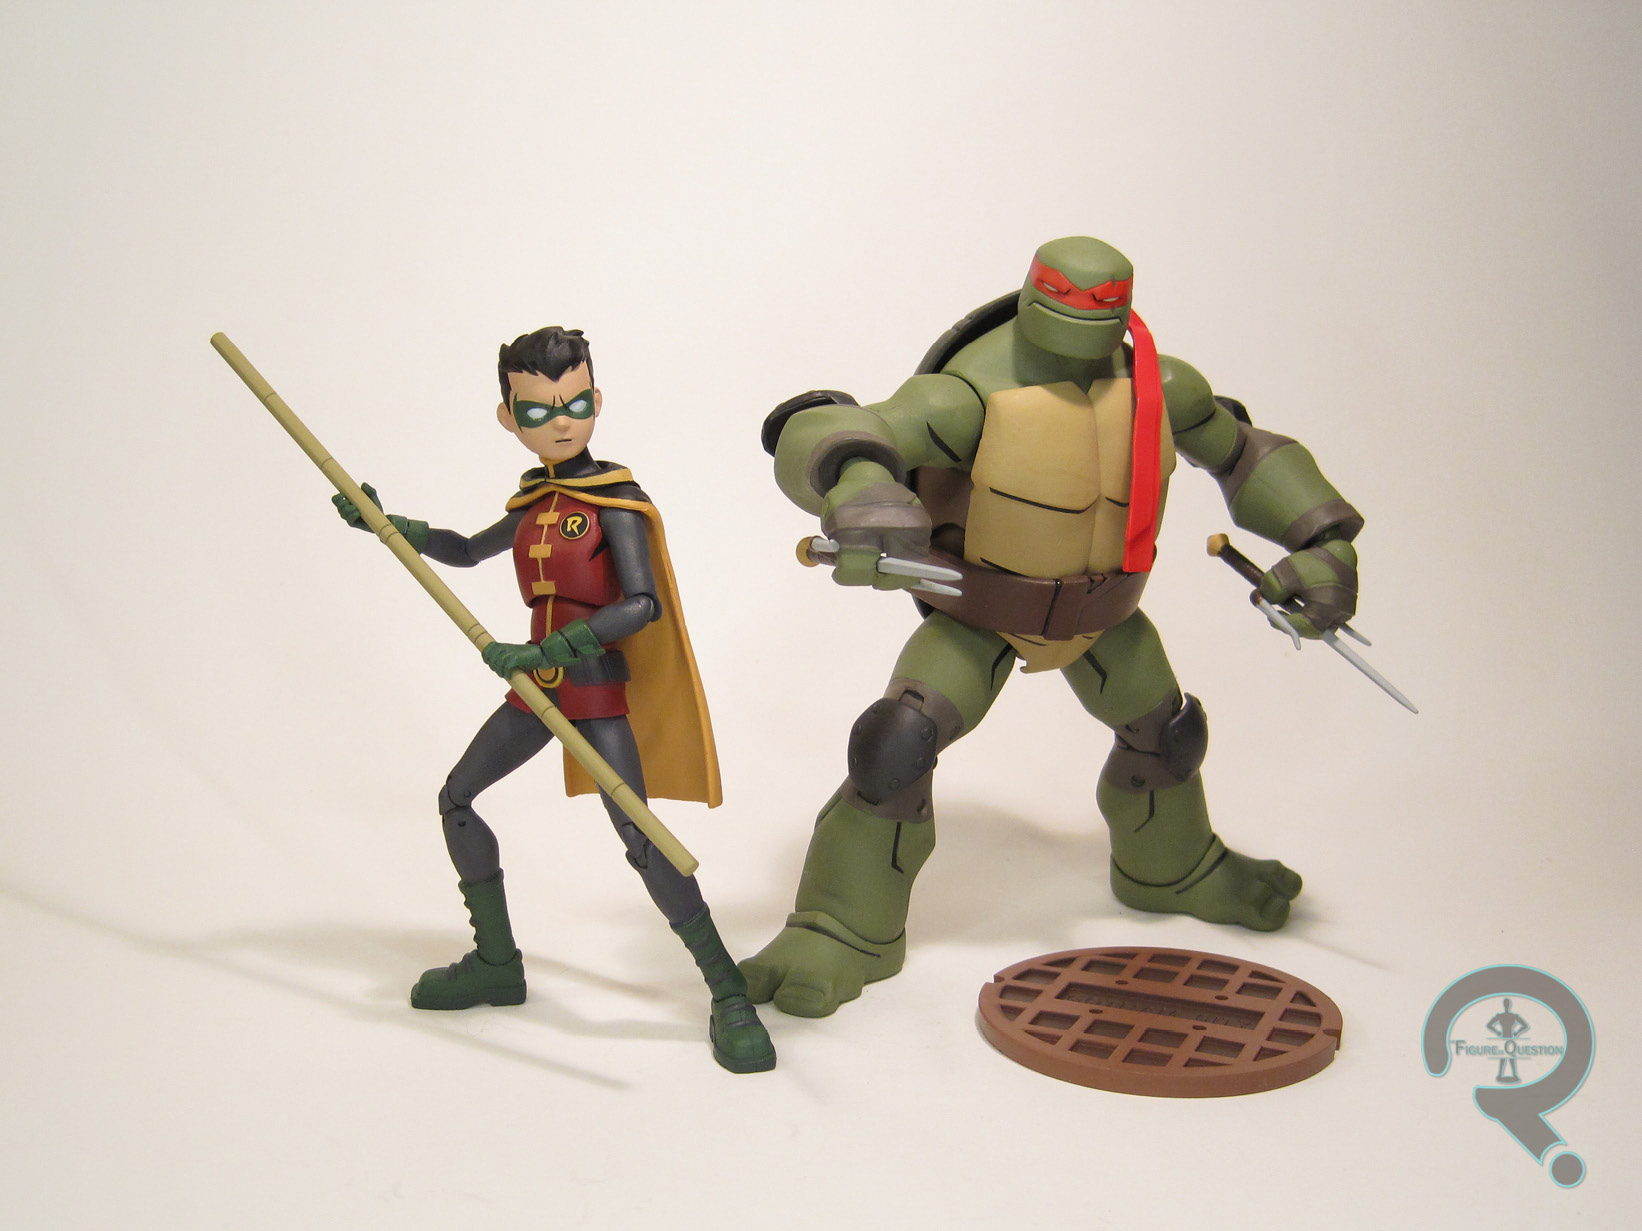 Raphael The Figure In Question